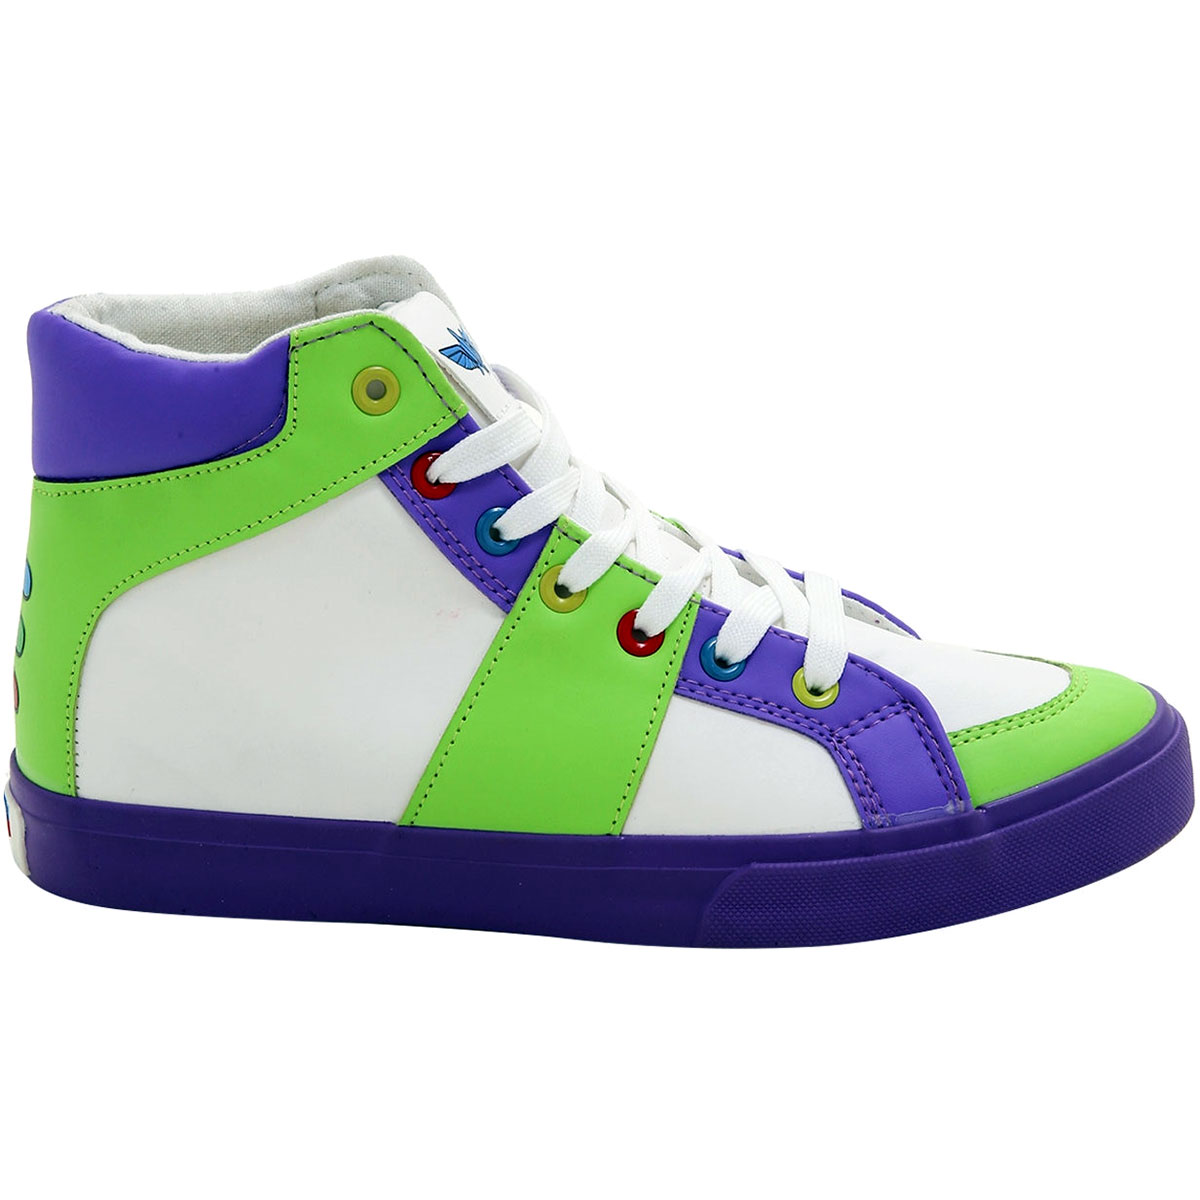 Toy Story 4 Buzz Lightyear Cosplay Sneakers